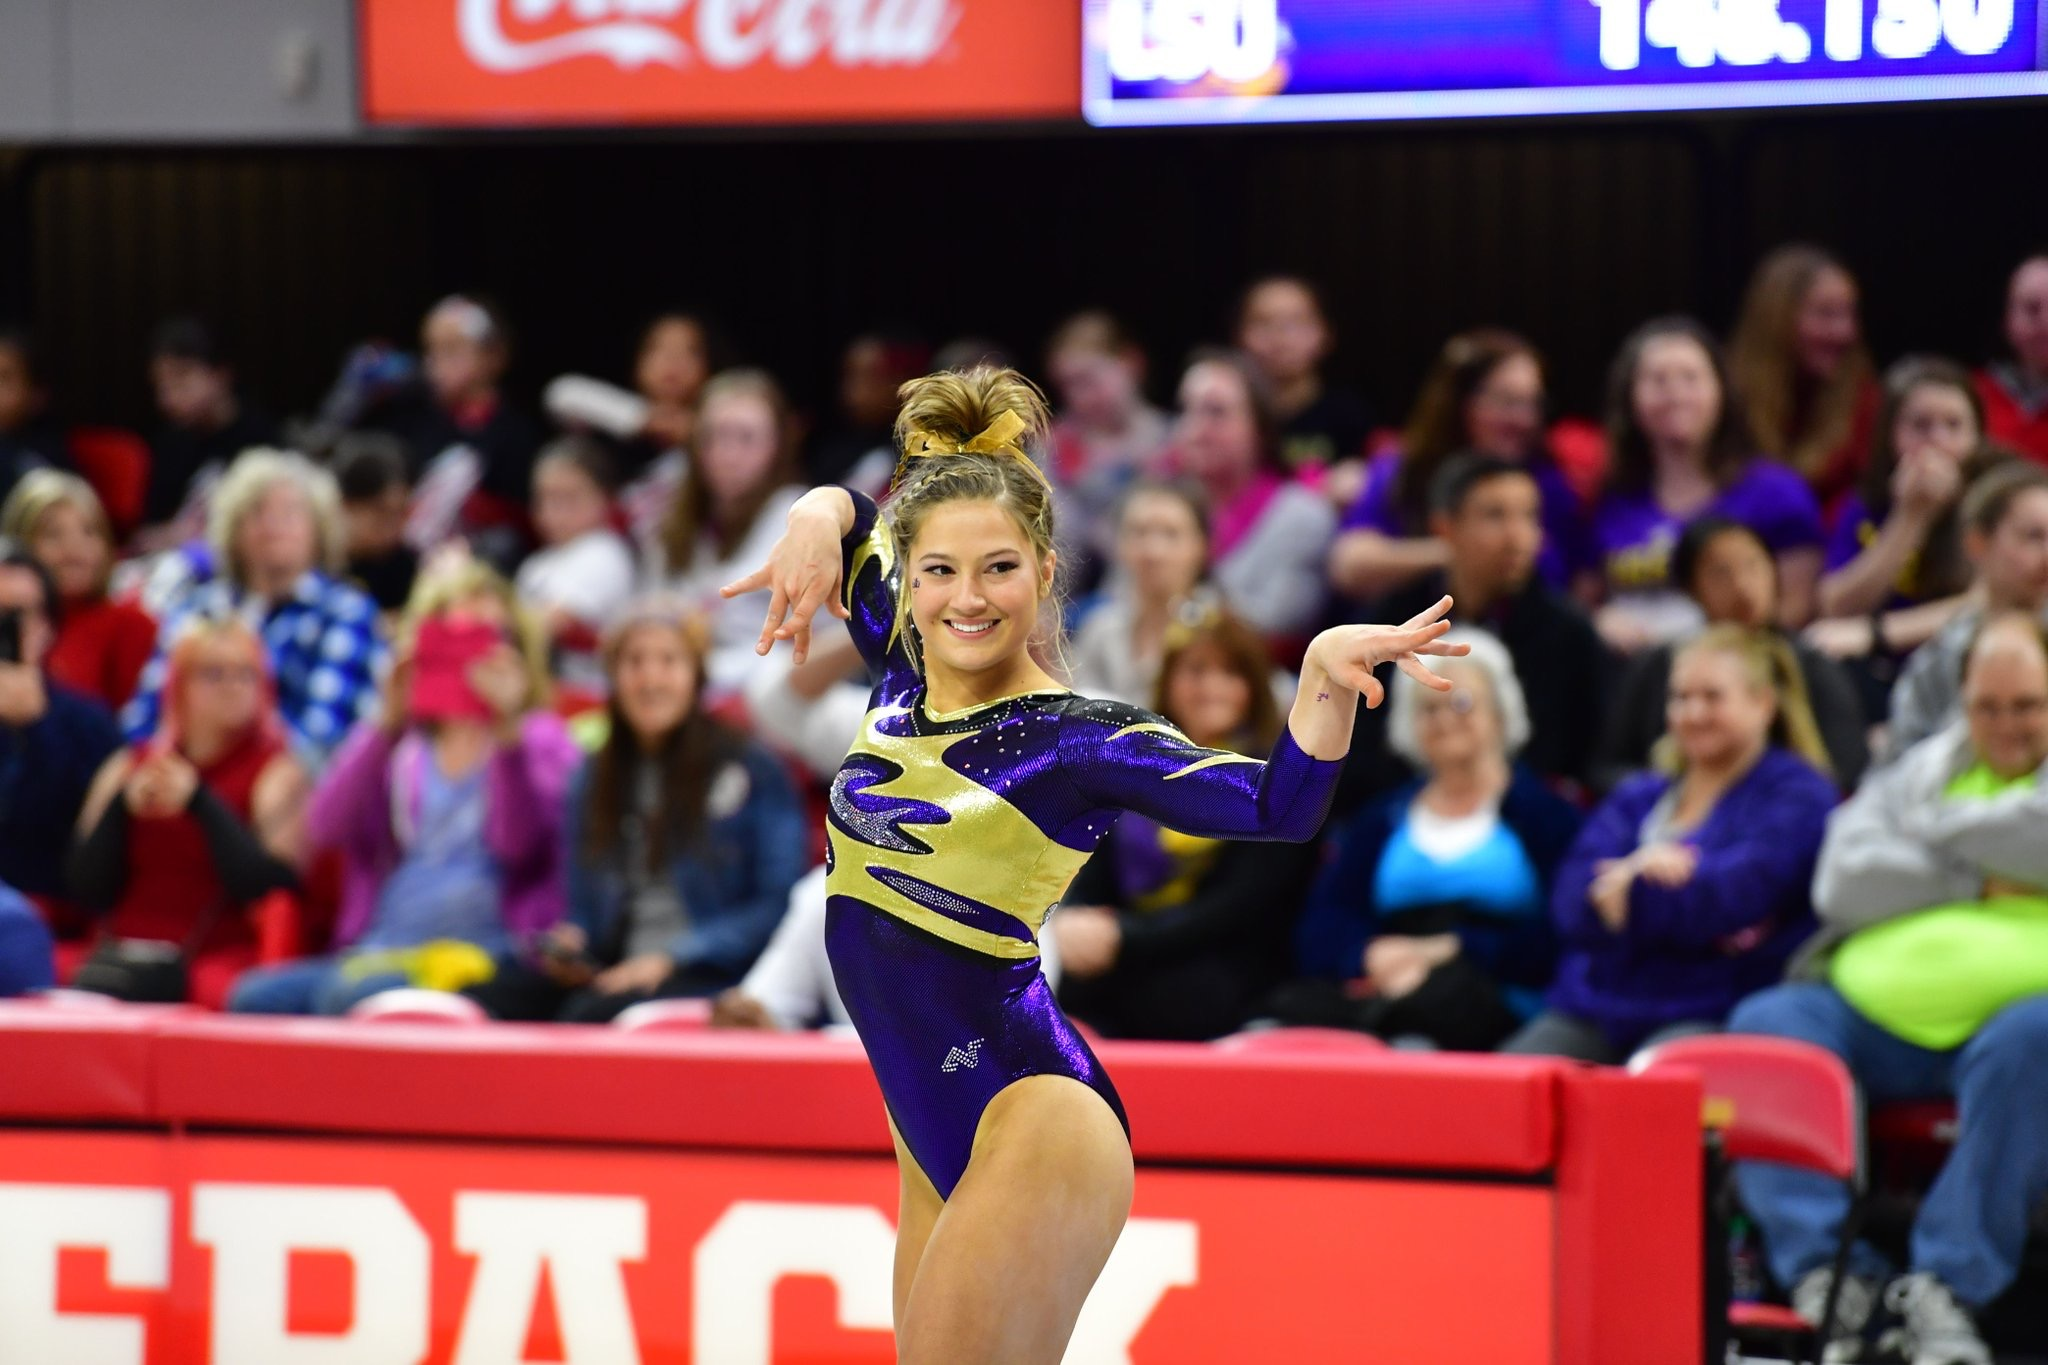 No. 2 Gym improves to 14-1 with win at NC State